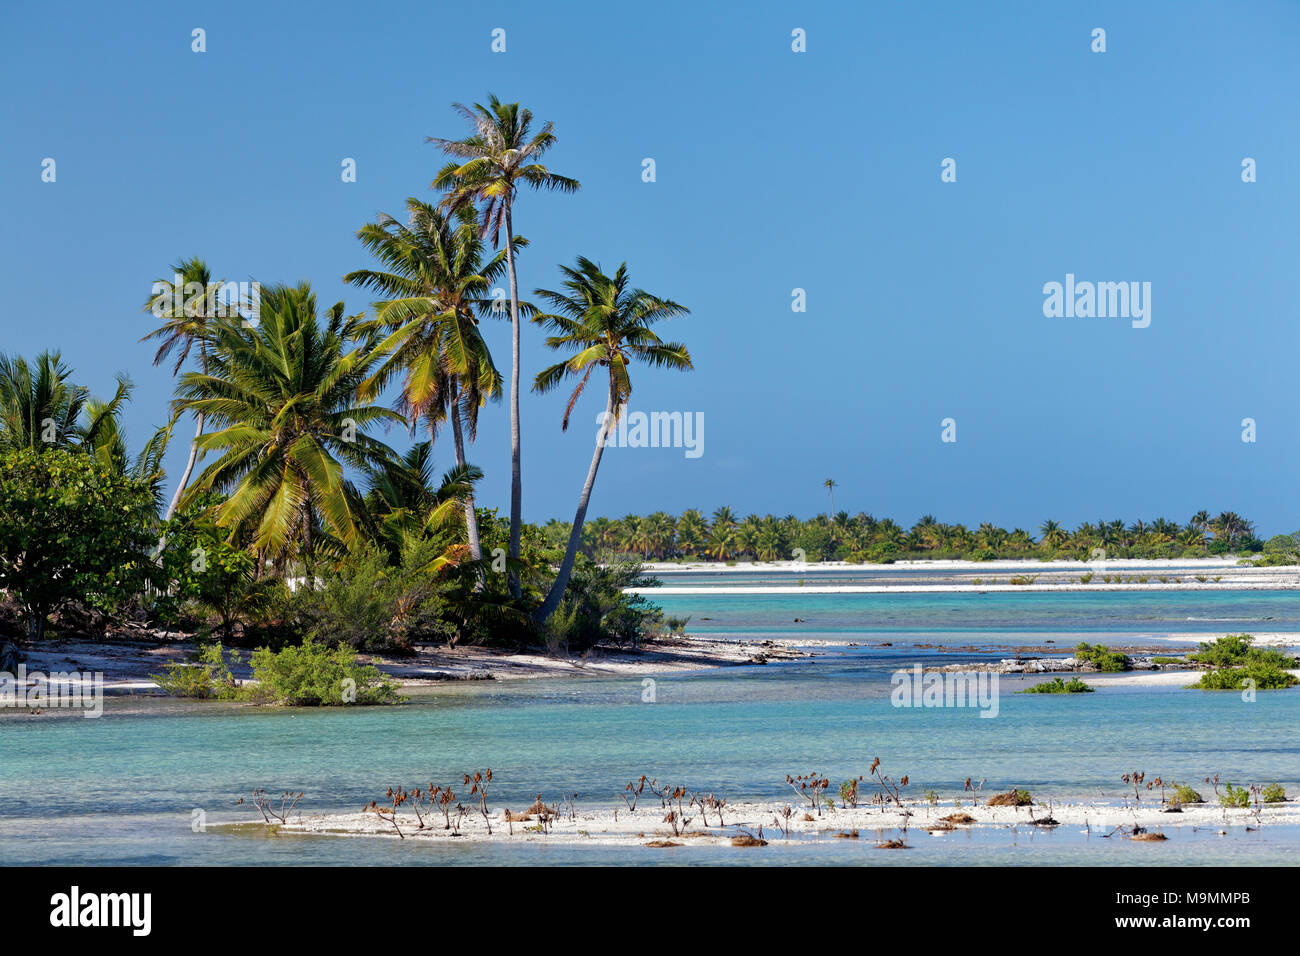 Island landscape with palm trees, lagoon, Tikehau Atoll, Tuamotu archipelago, society islands, Windward Islands - Stock Image